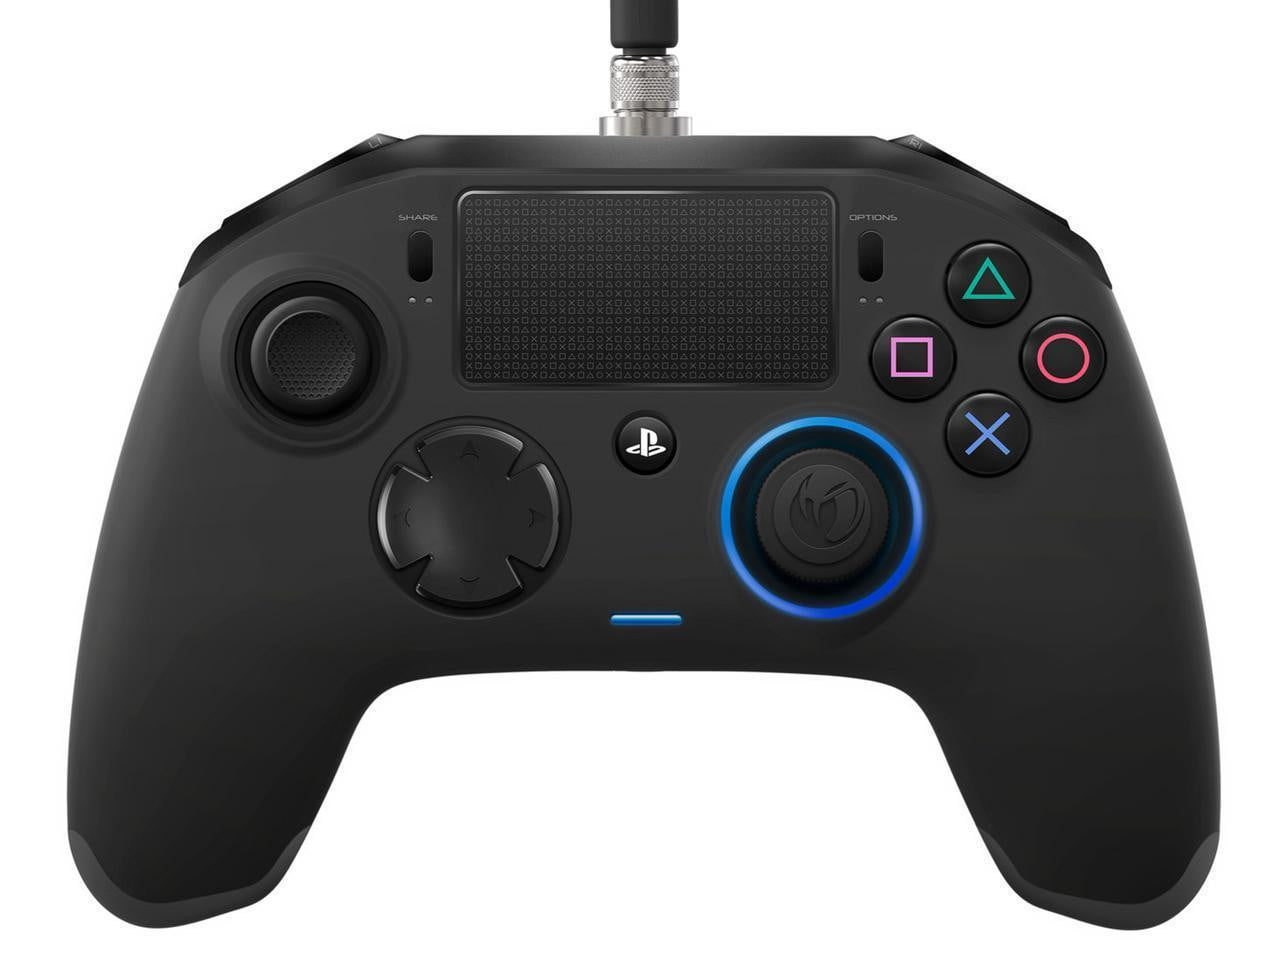 Buy NACON Revolution Pro Controller V2 Accessories in Egypt - Shamy Stores